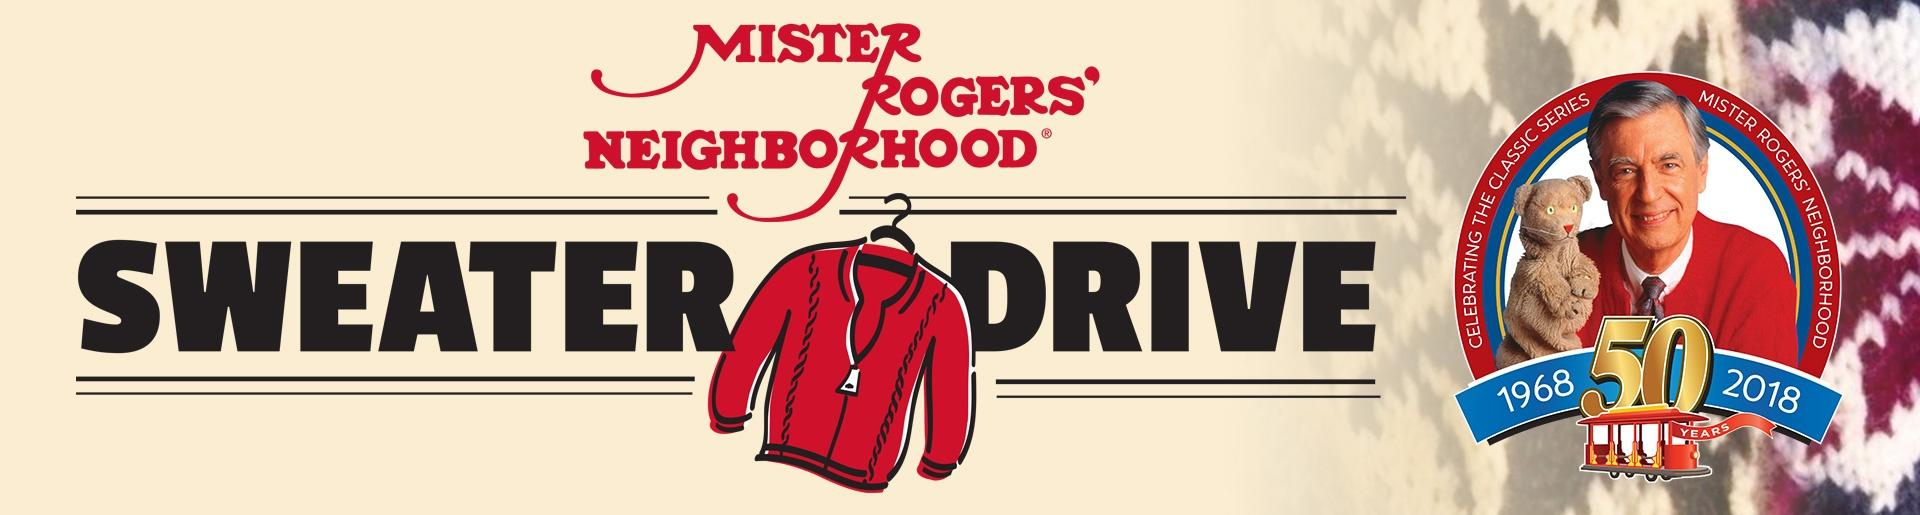 Mister Rogers Neighborhood Sweater Drive Header